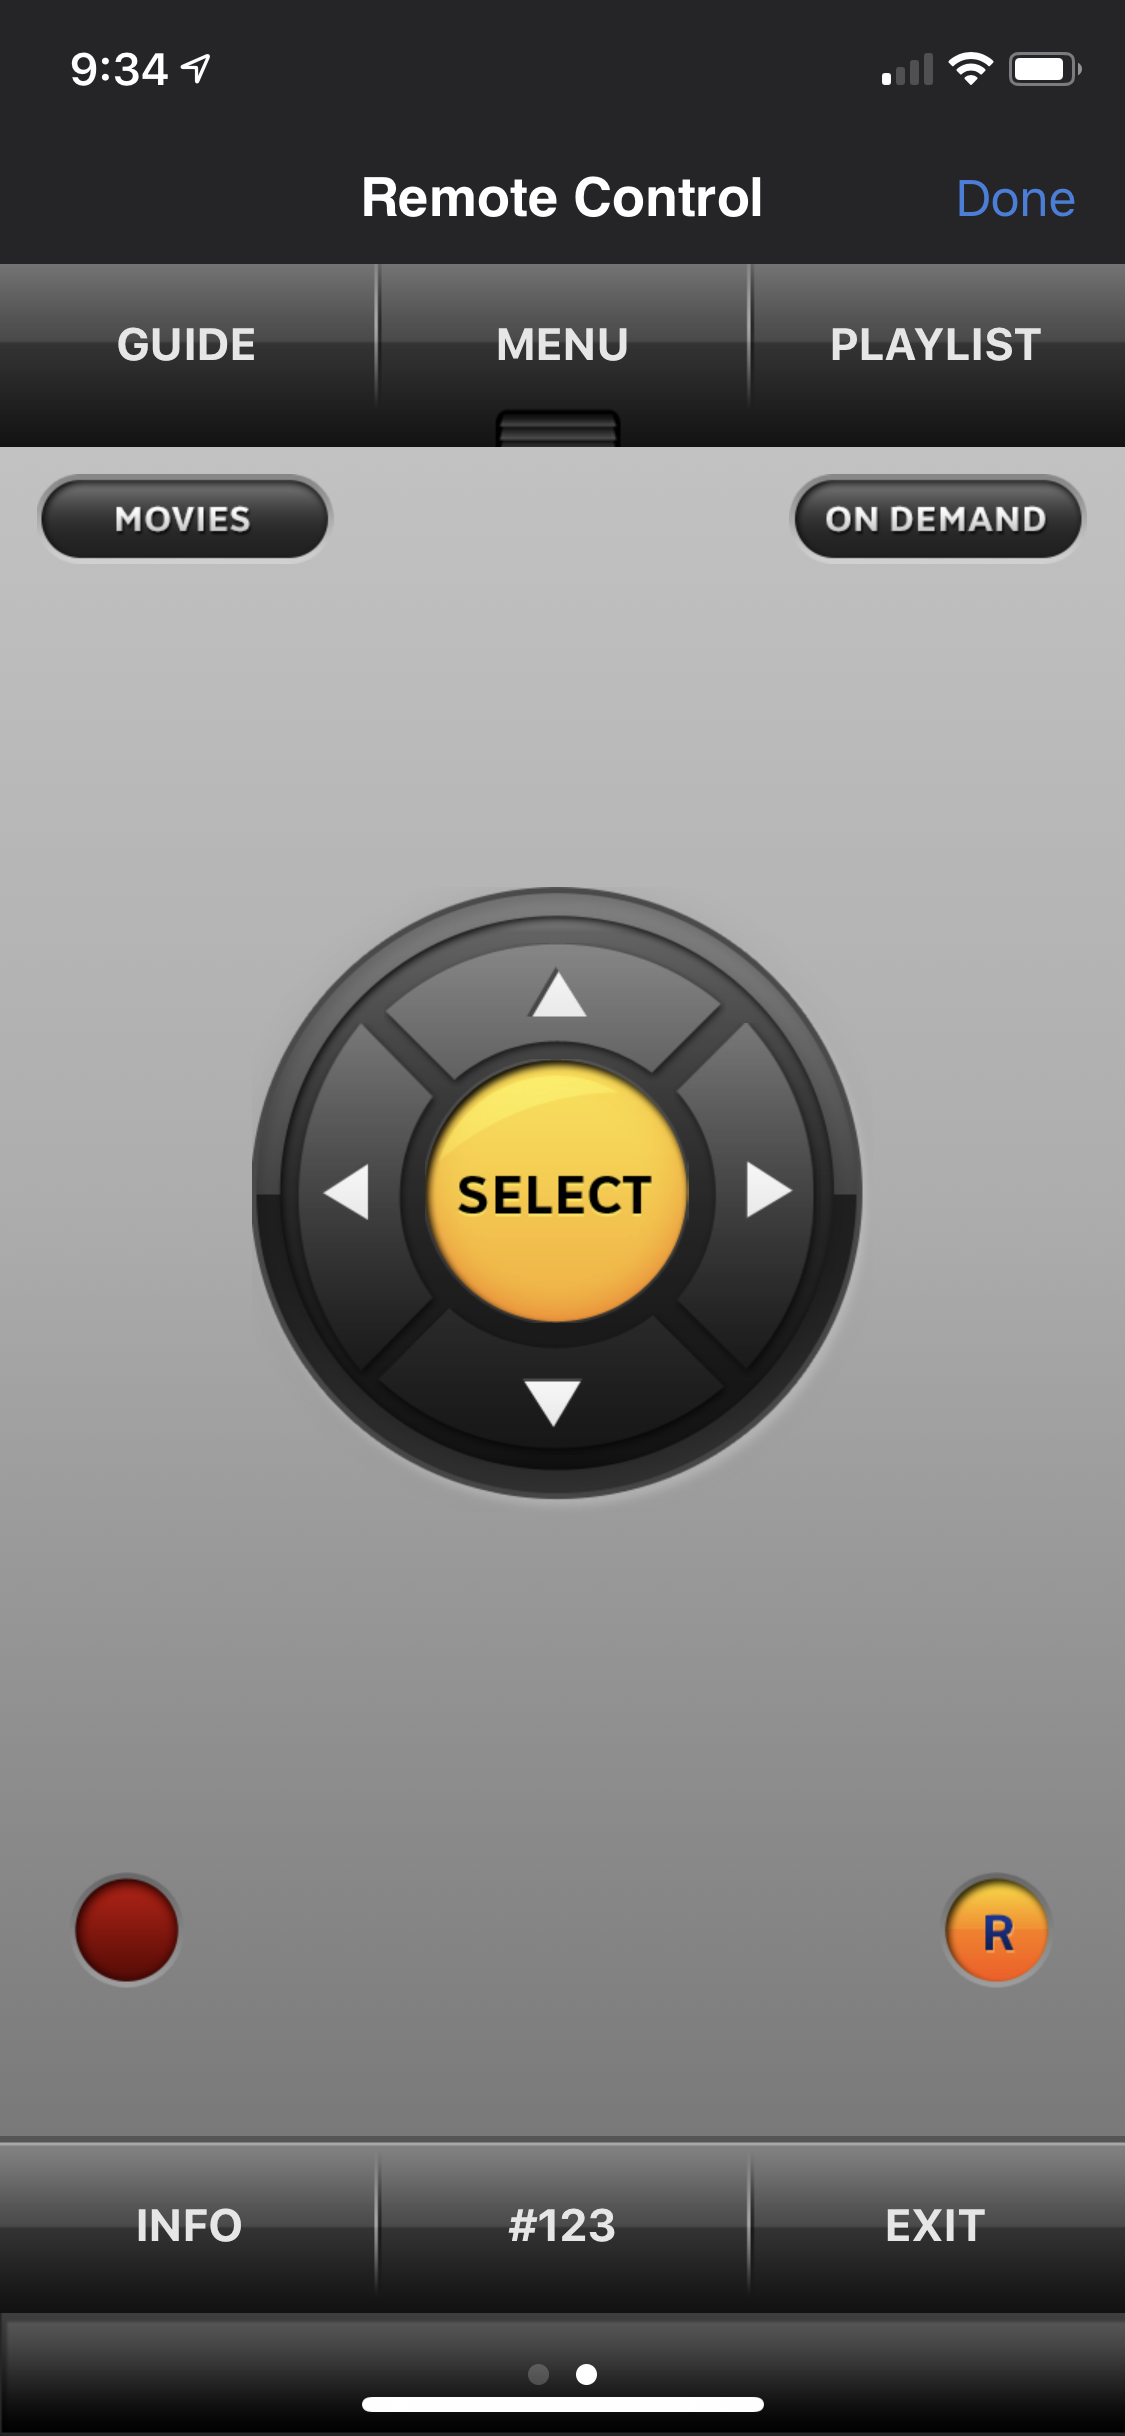 The best IP remote for DIRECTV - The Solid Signal Blog